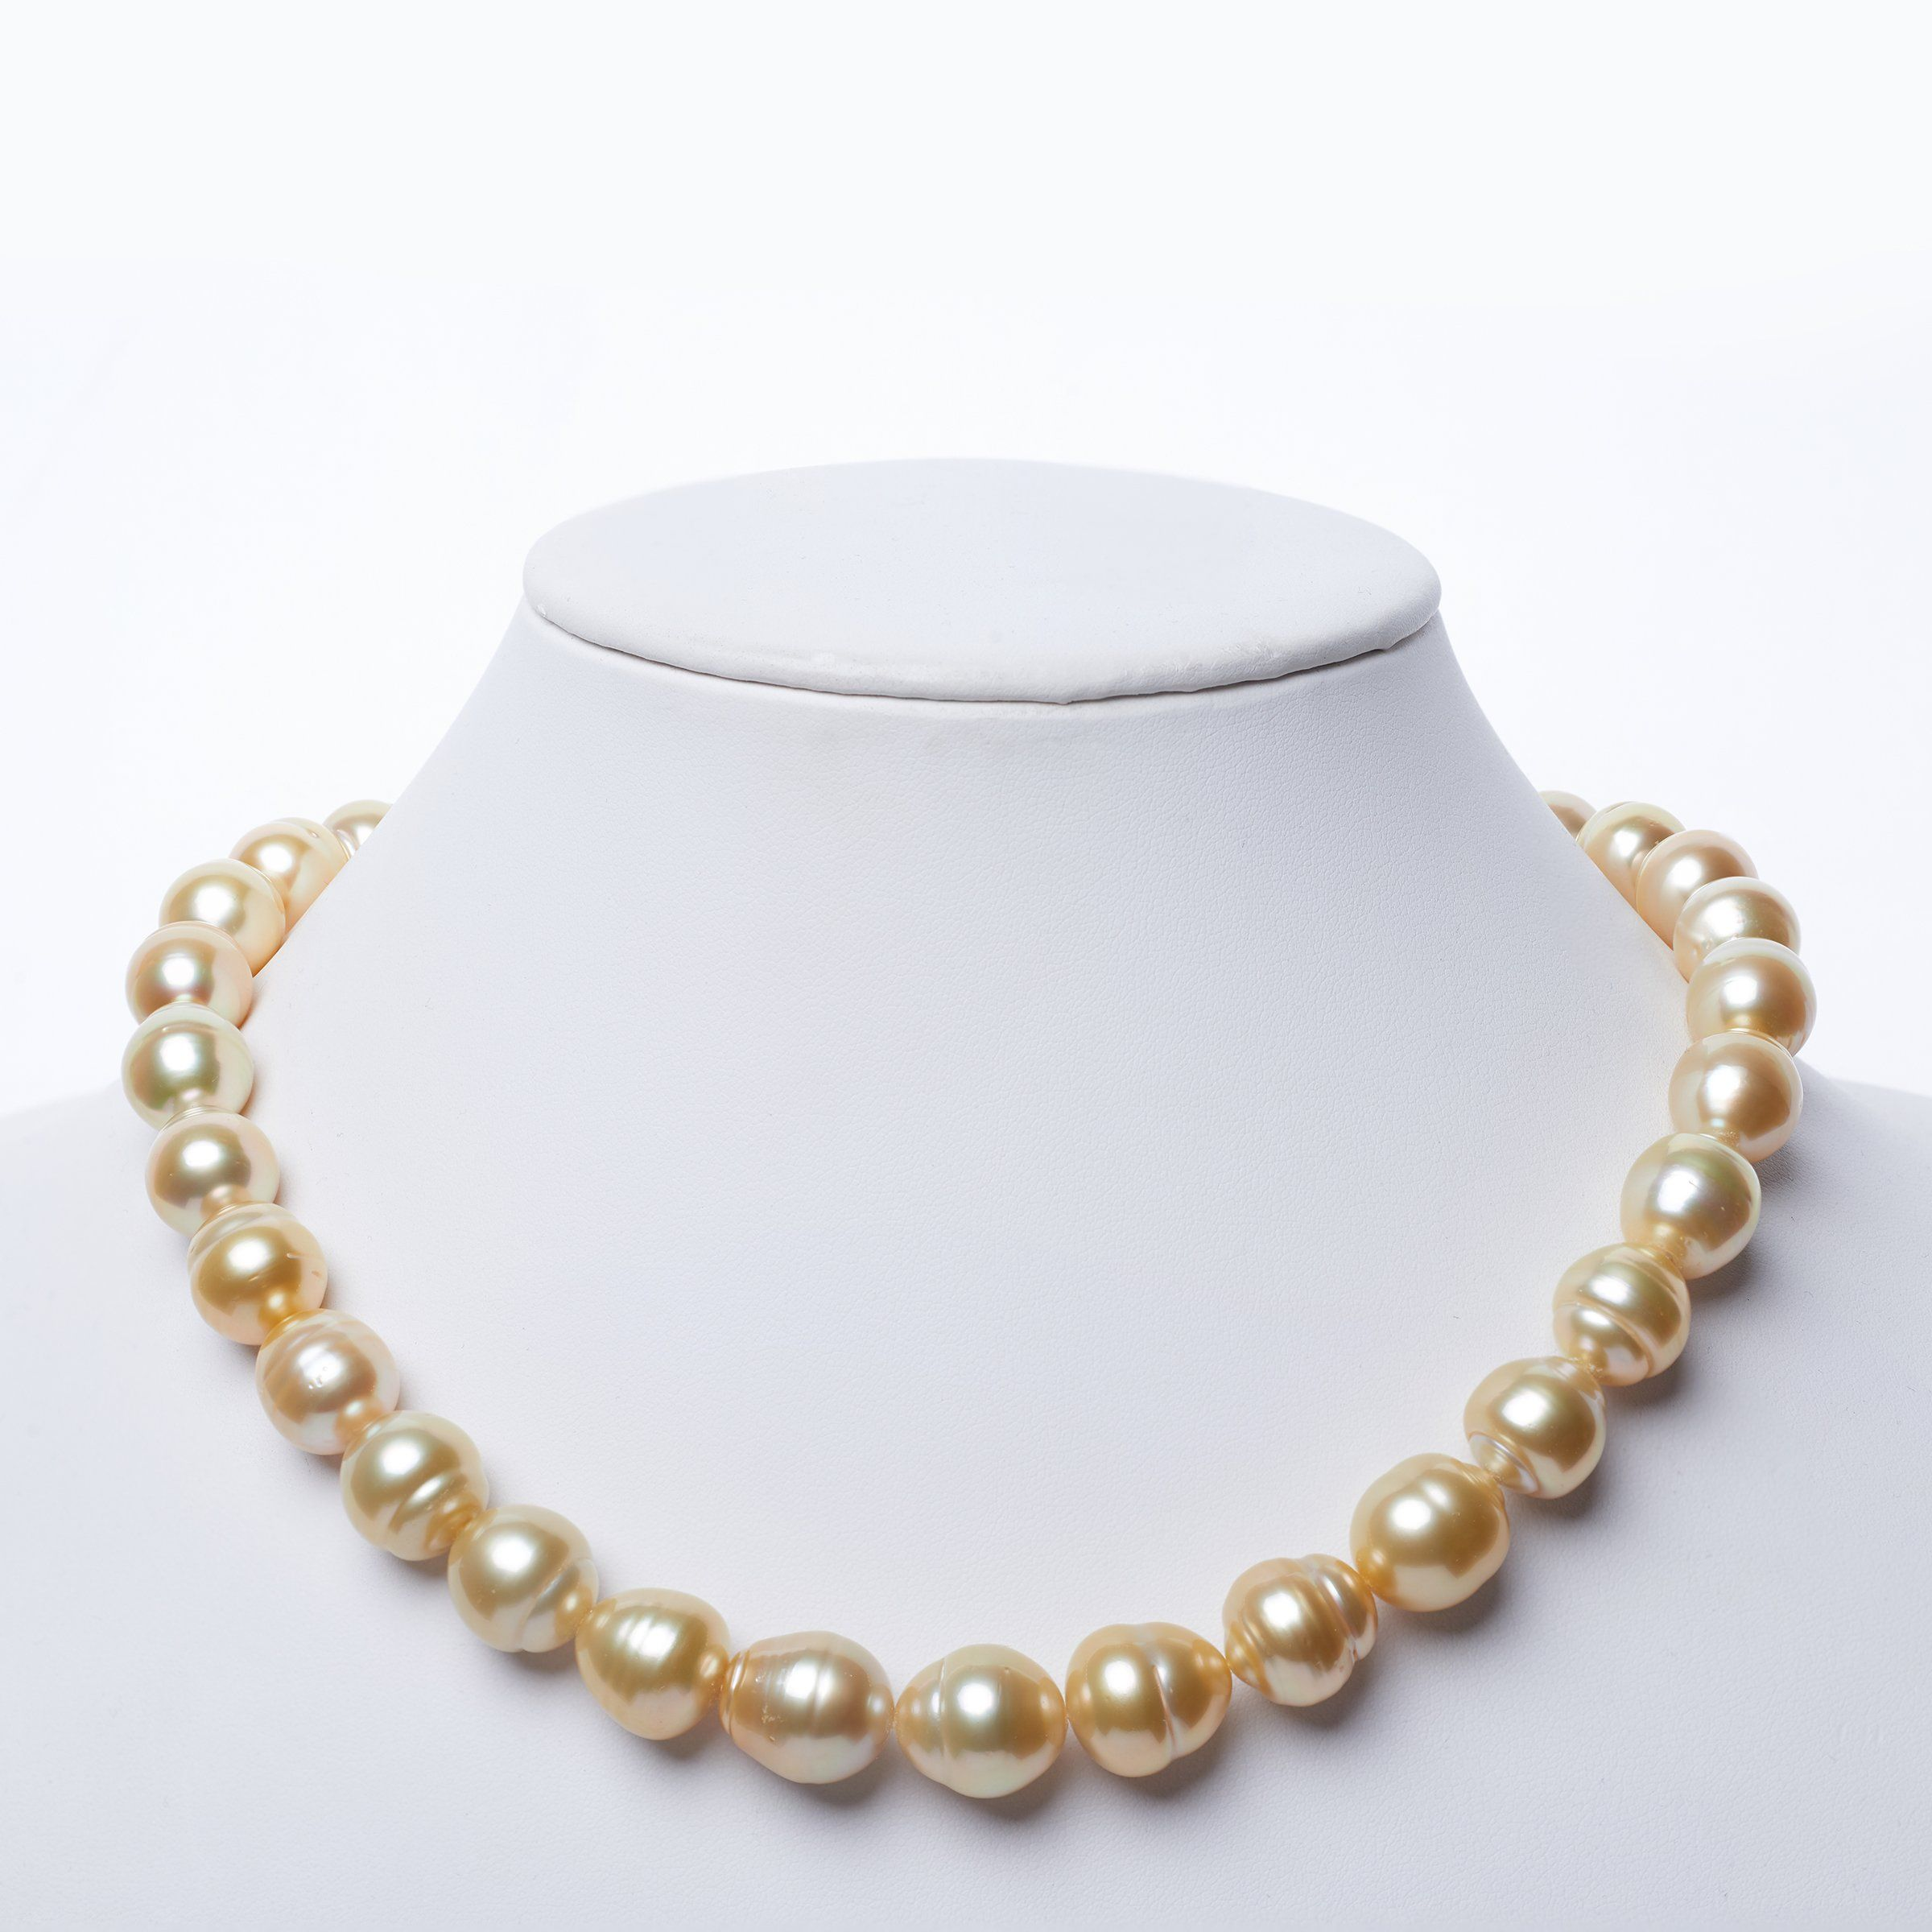 12.9-13.95 mm Golden South Sea Baroque Necklace